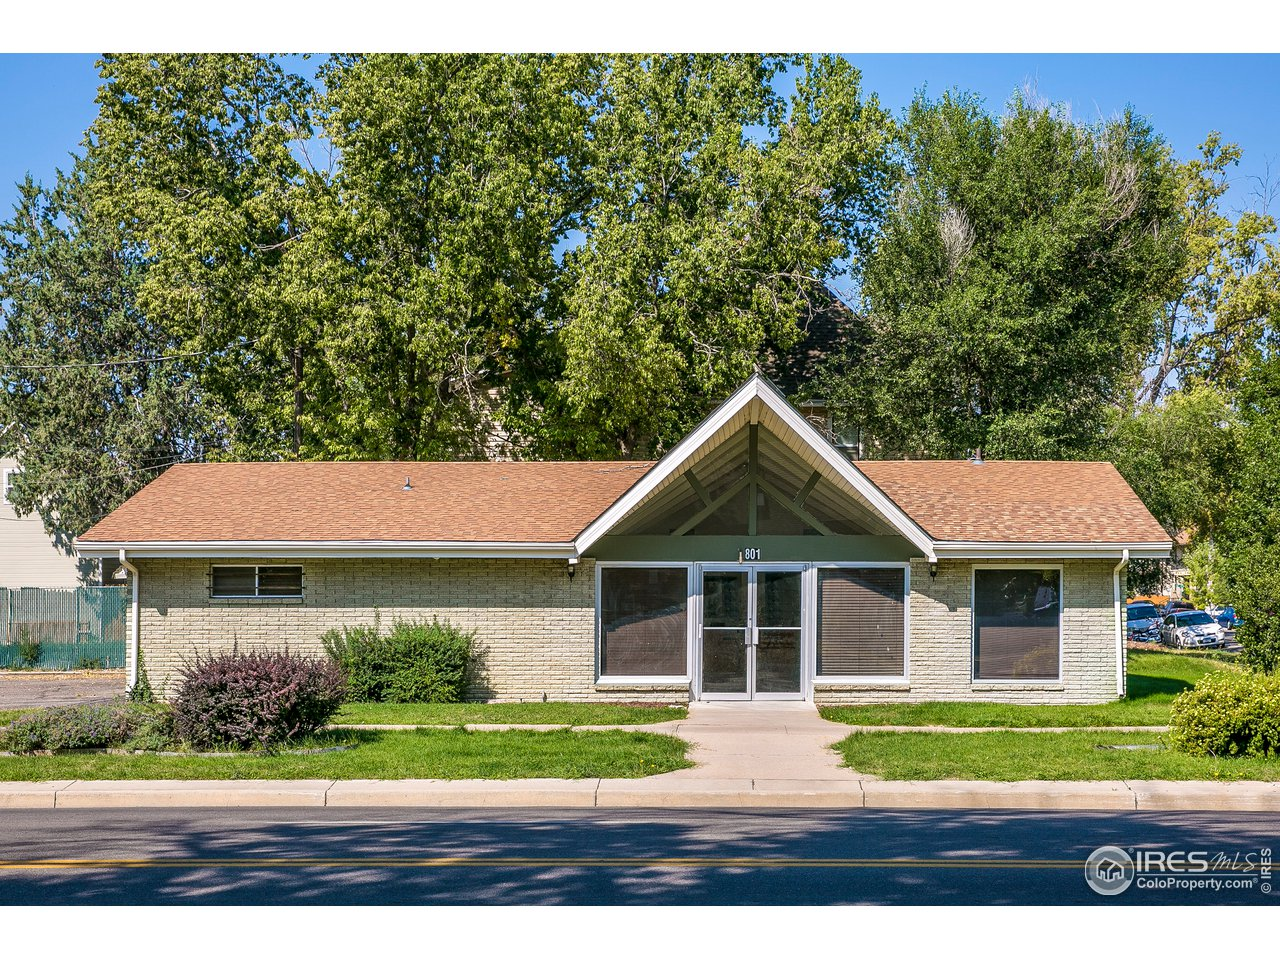 801 11TH AVE, GREELEY, CO 80631